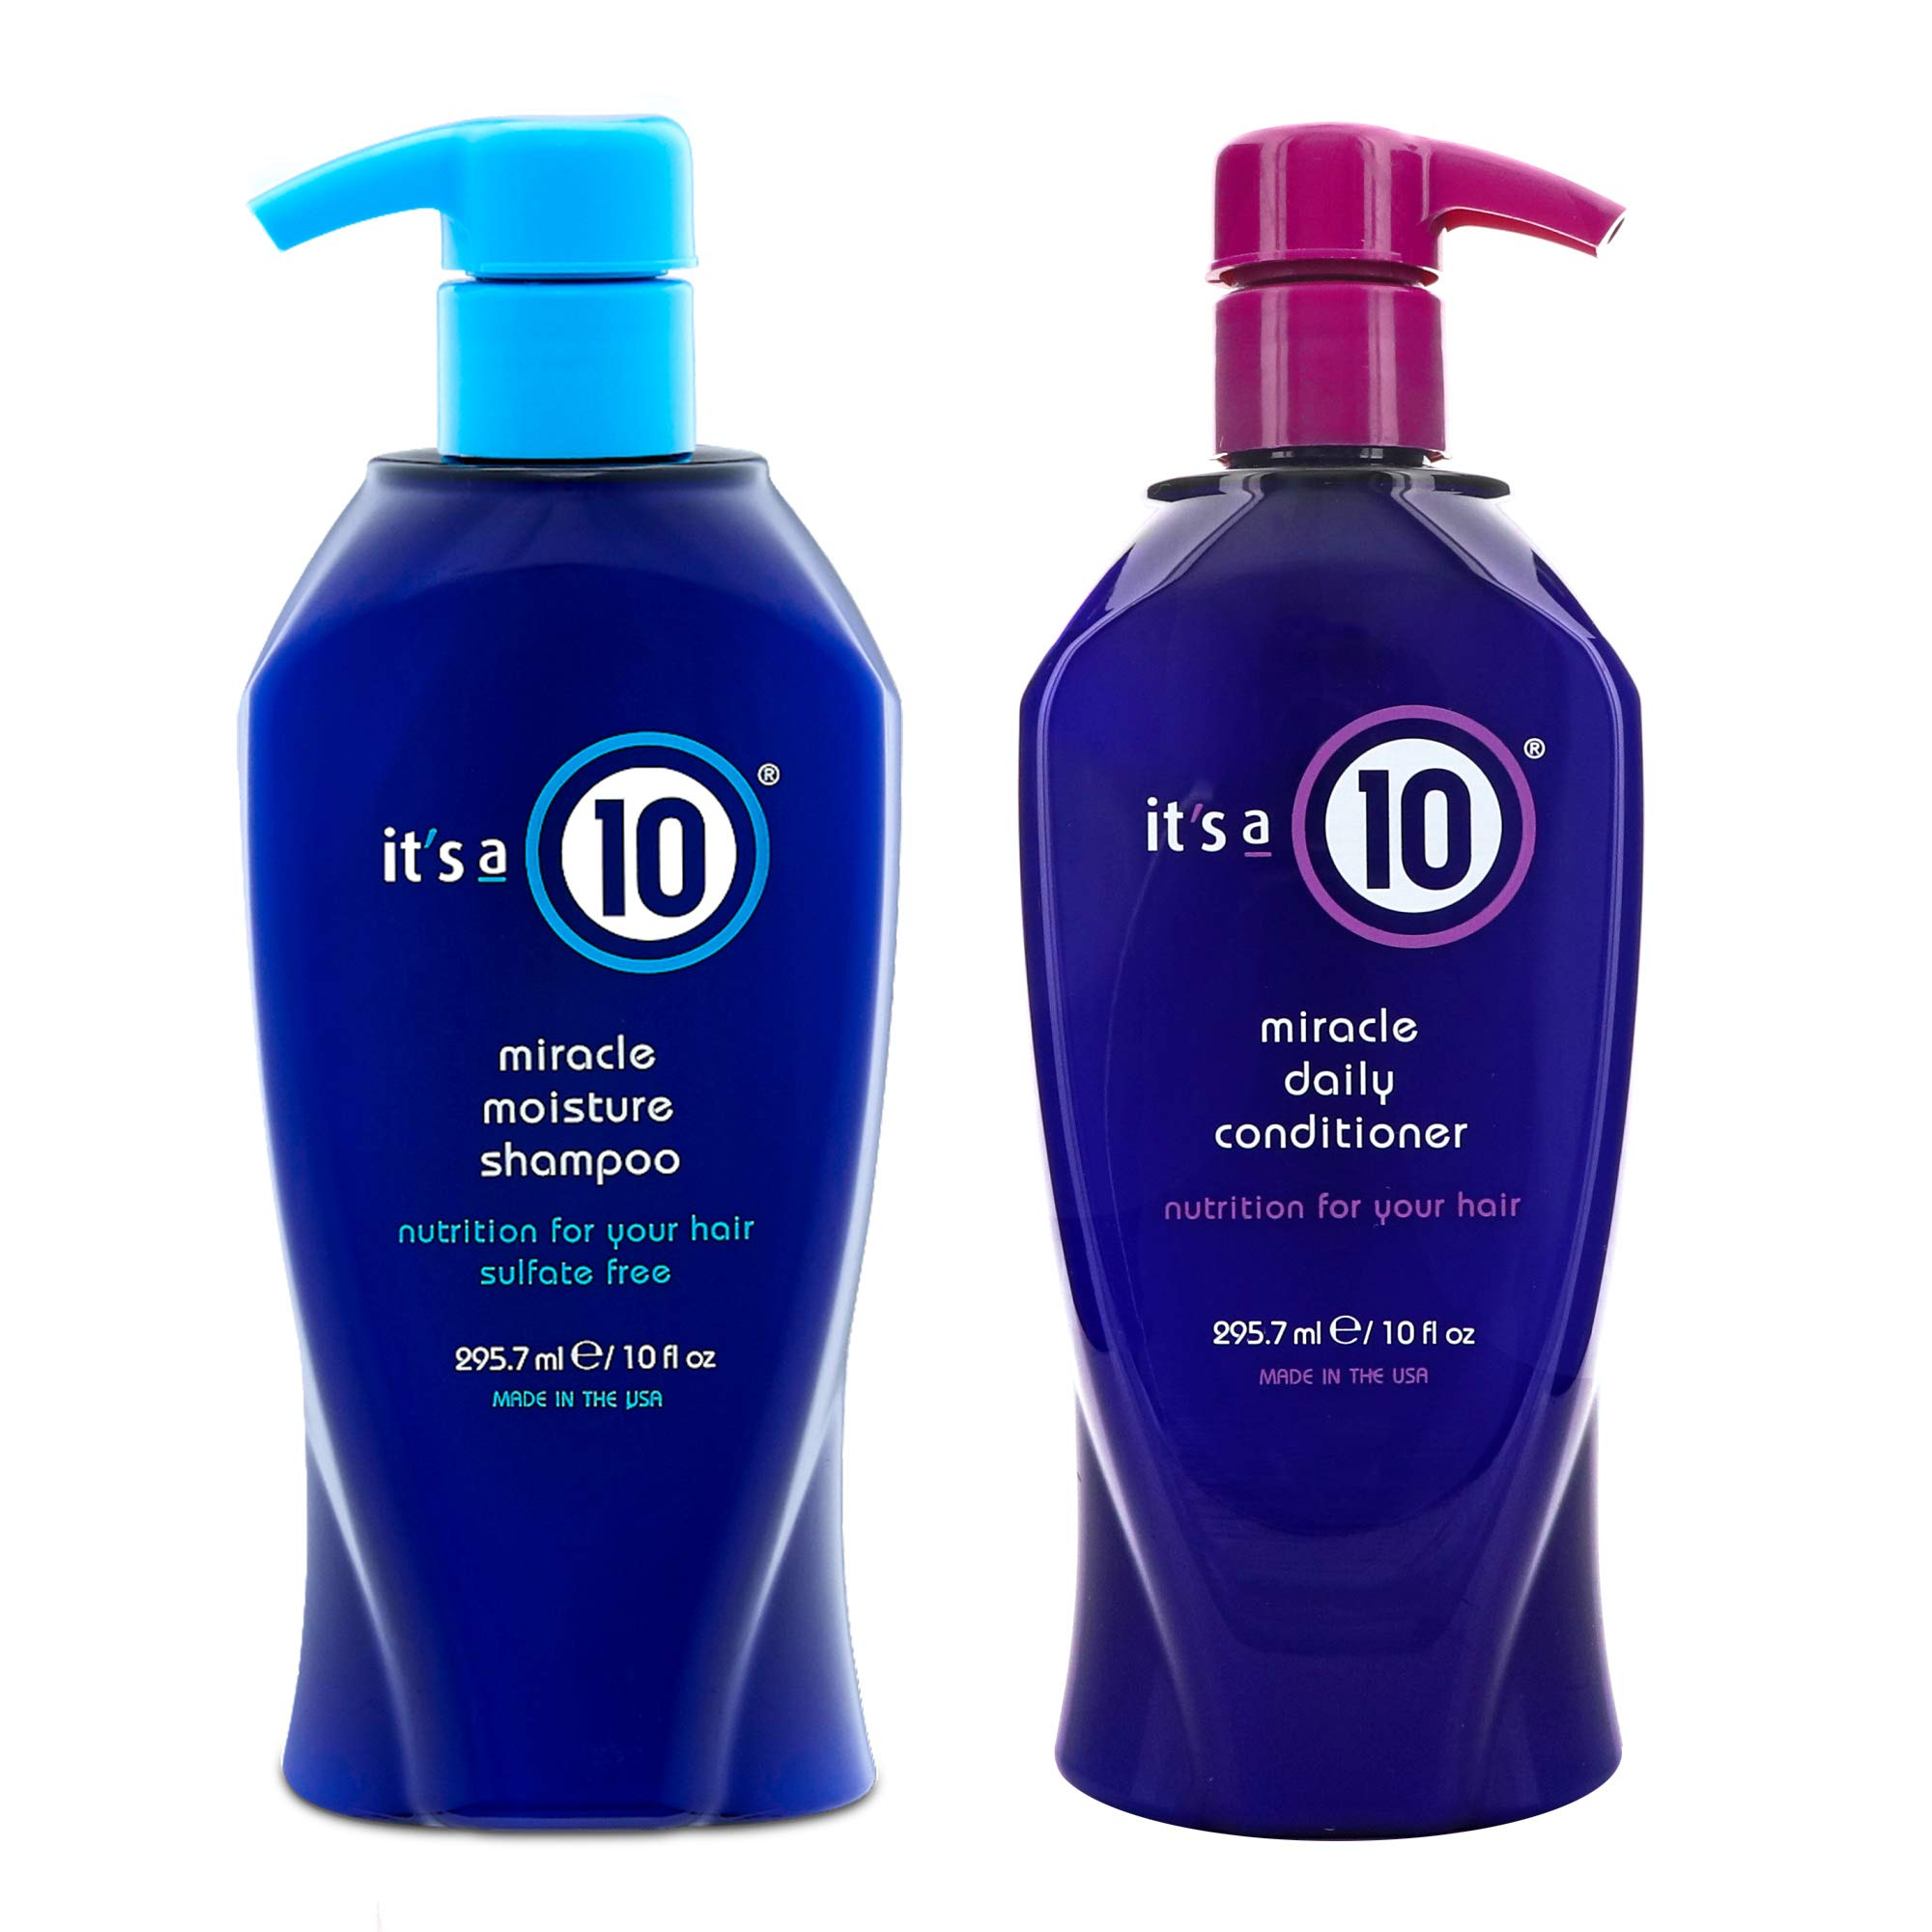 It's a 10 Miracle Daily 10 Oz. Shampoo and 10 Oz. Conditioner Combo Deal by It's a 10 Haircare